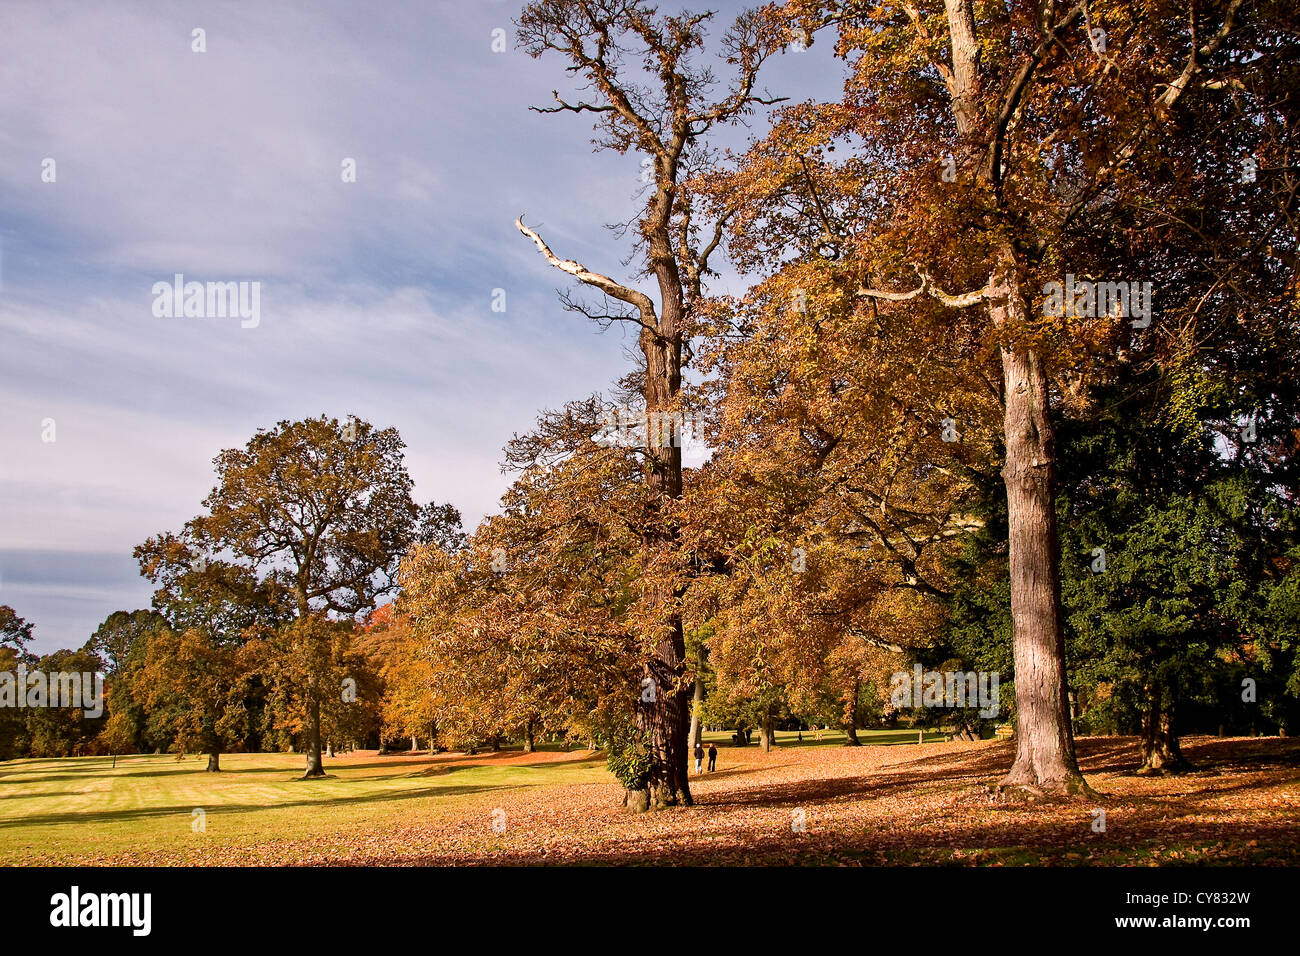 People enjoying a walk and playing golf in the Autumn sunshine at the Camperdown Country Park in Dundee,UK Stock Photo